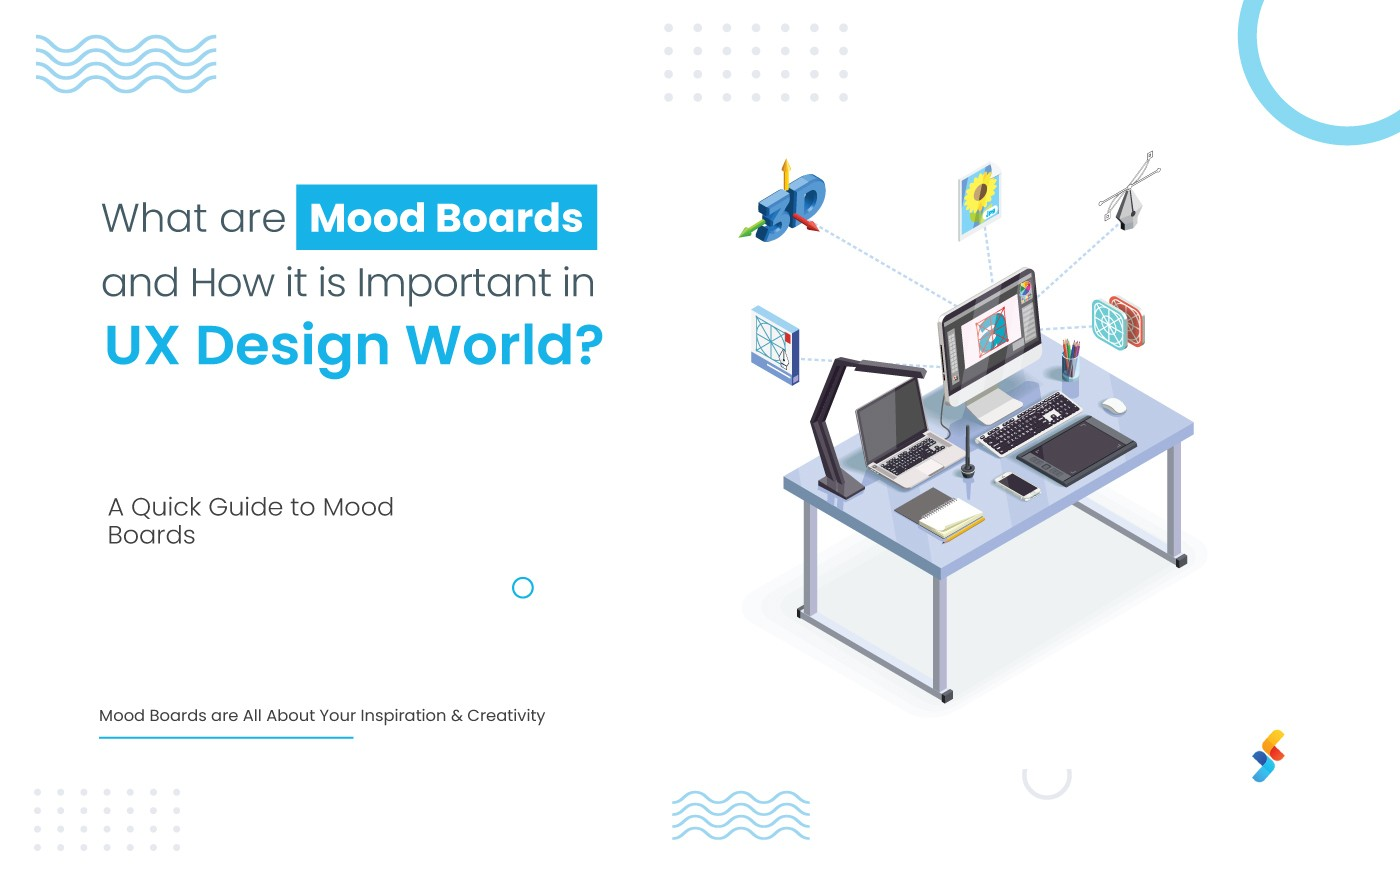 What-are-Mood-Boards-and-How-it-is-Important-in-UX-Design-World